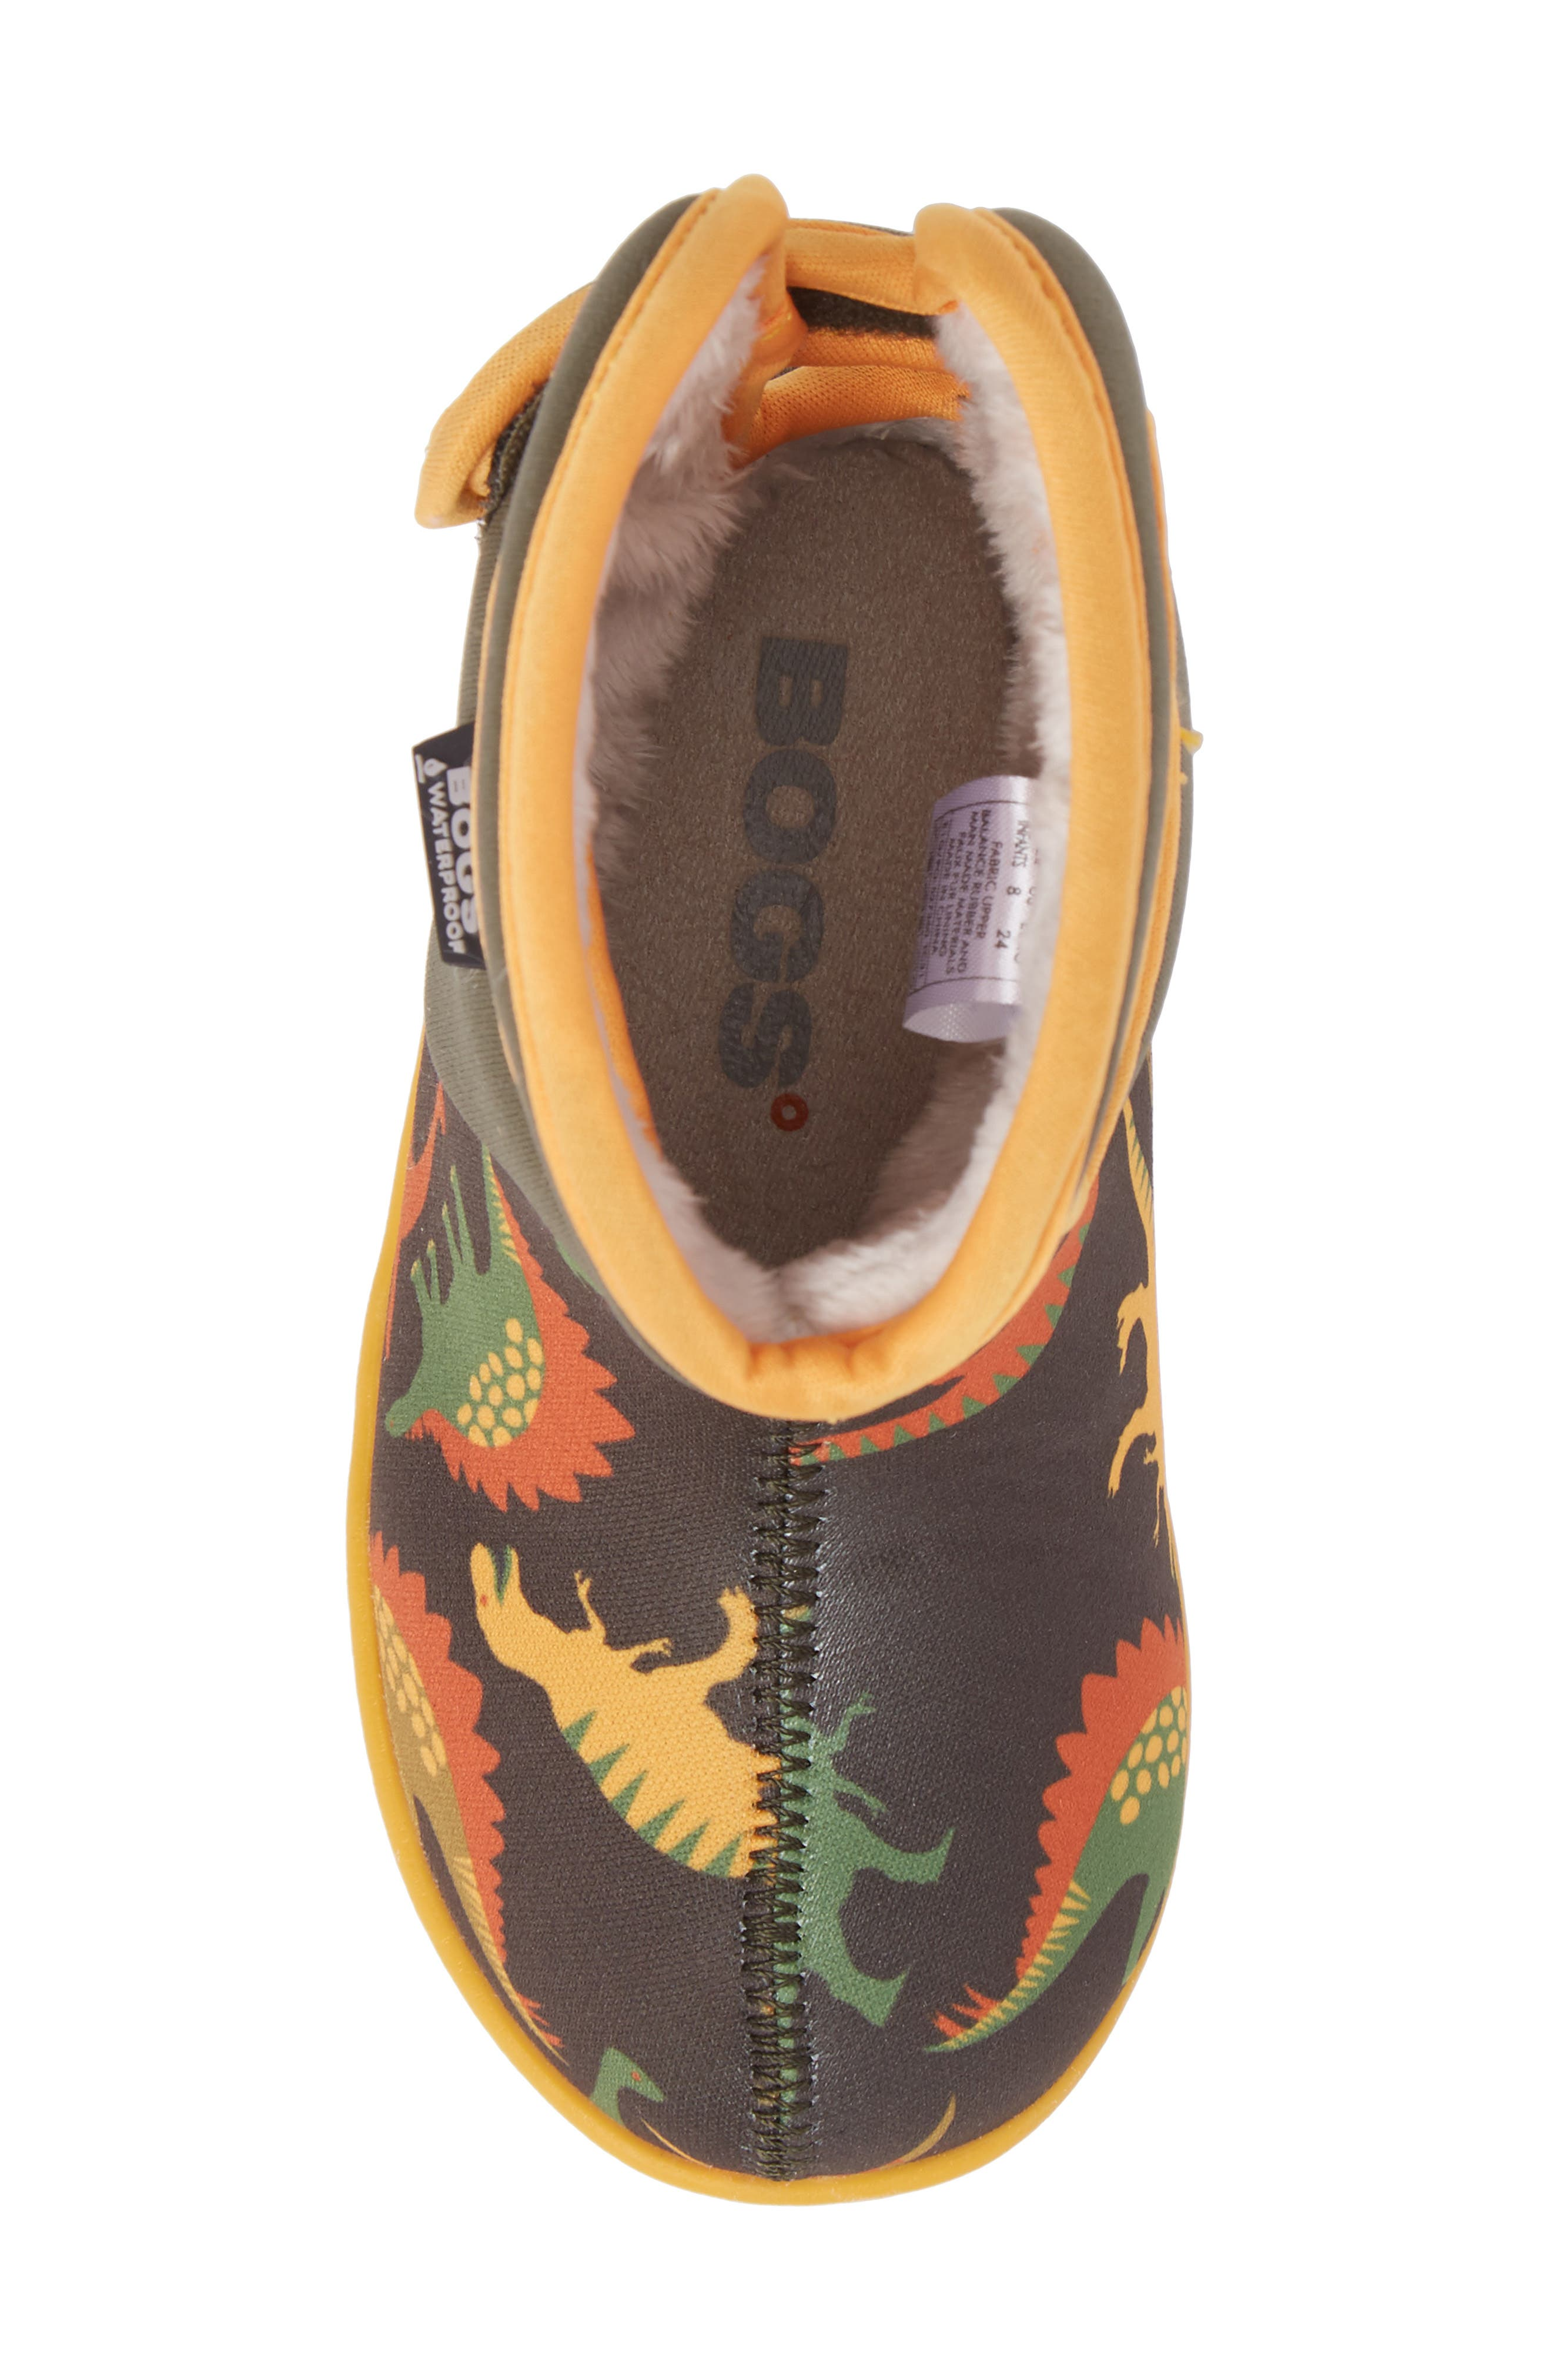 Baby Bog Classic Dino Insulated Waterproof Boot,                             Alternate thumbnail 5, color,                             356